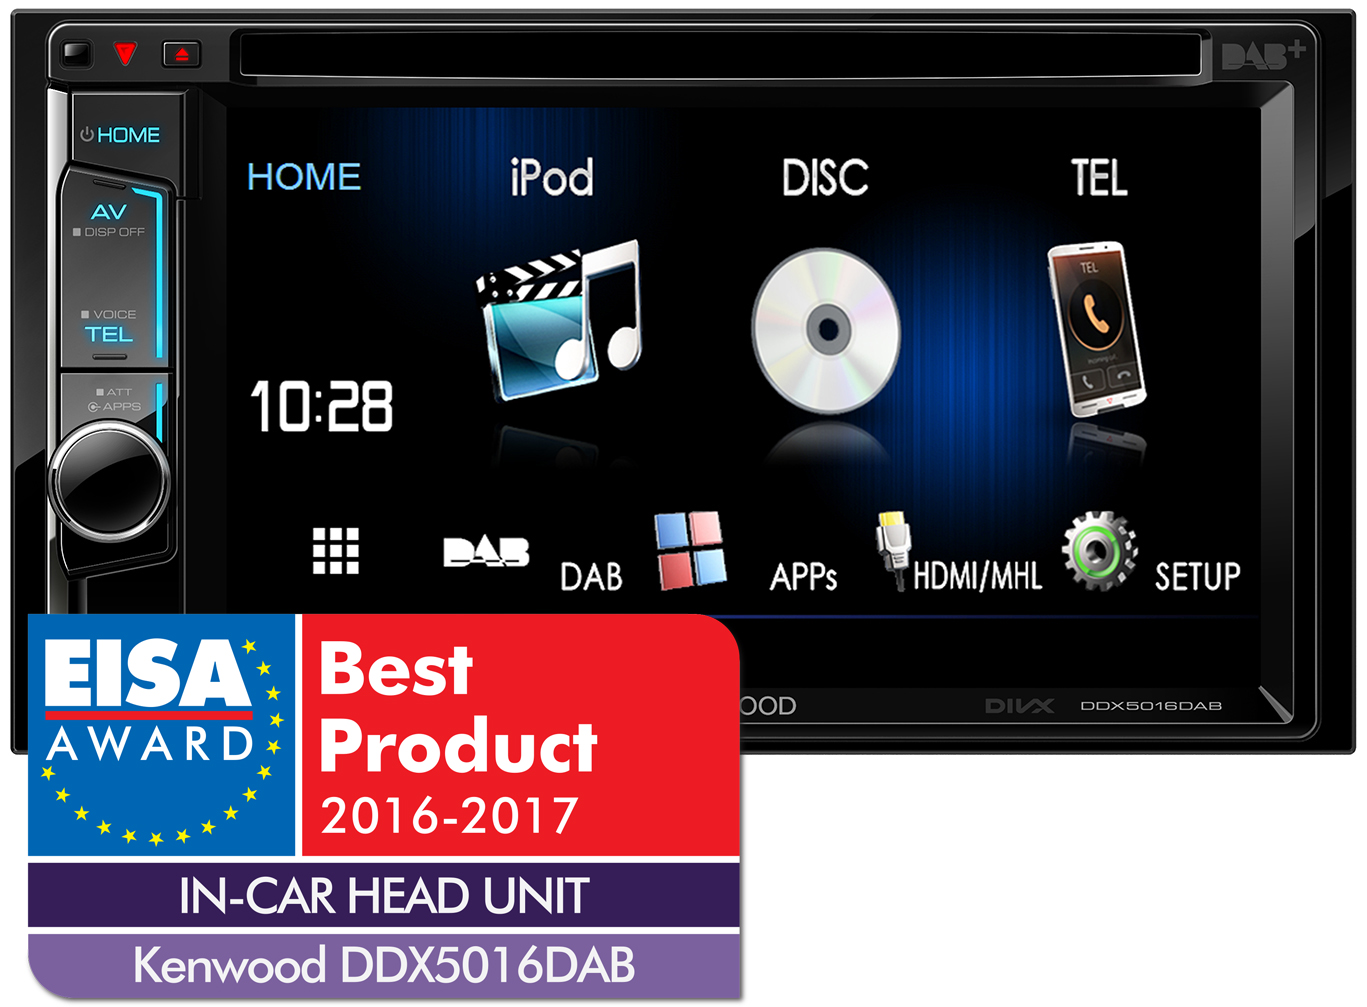 iphone for android kenwood multimedia systems ddx5016dab features kenwood uk 5015